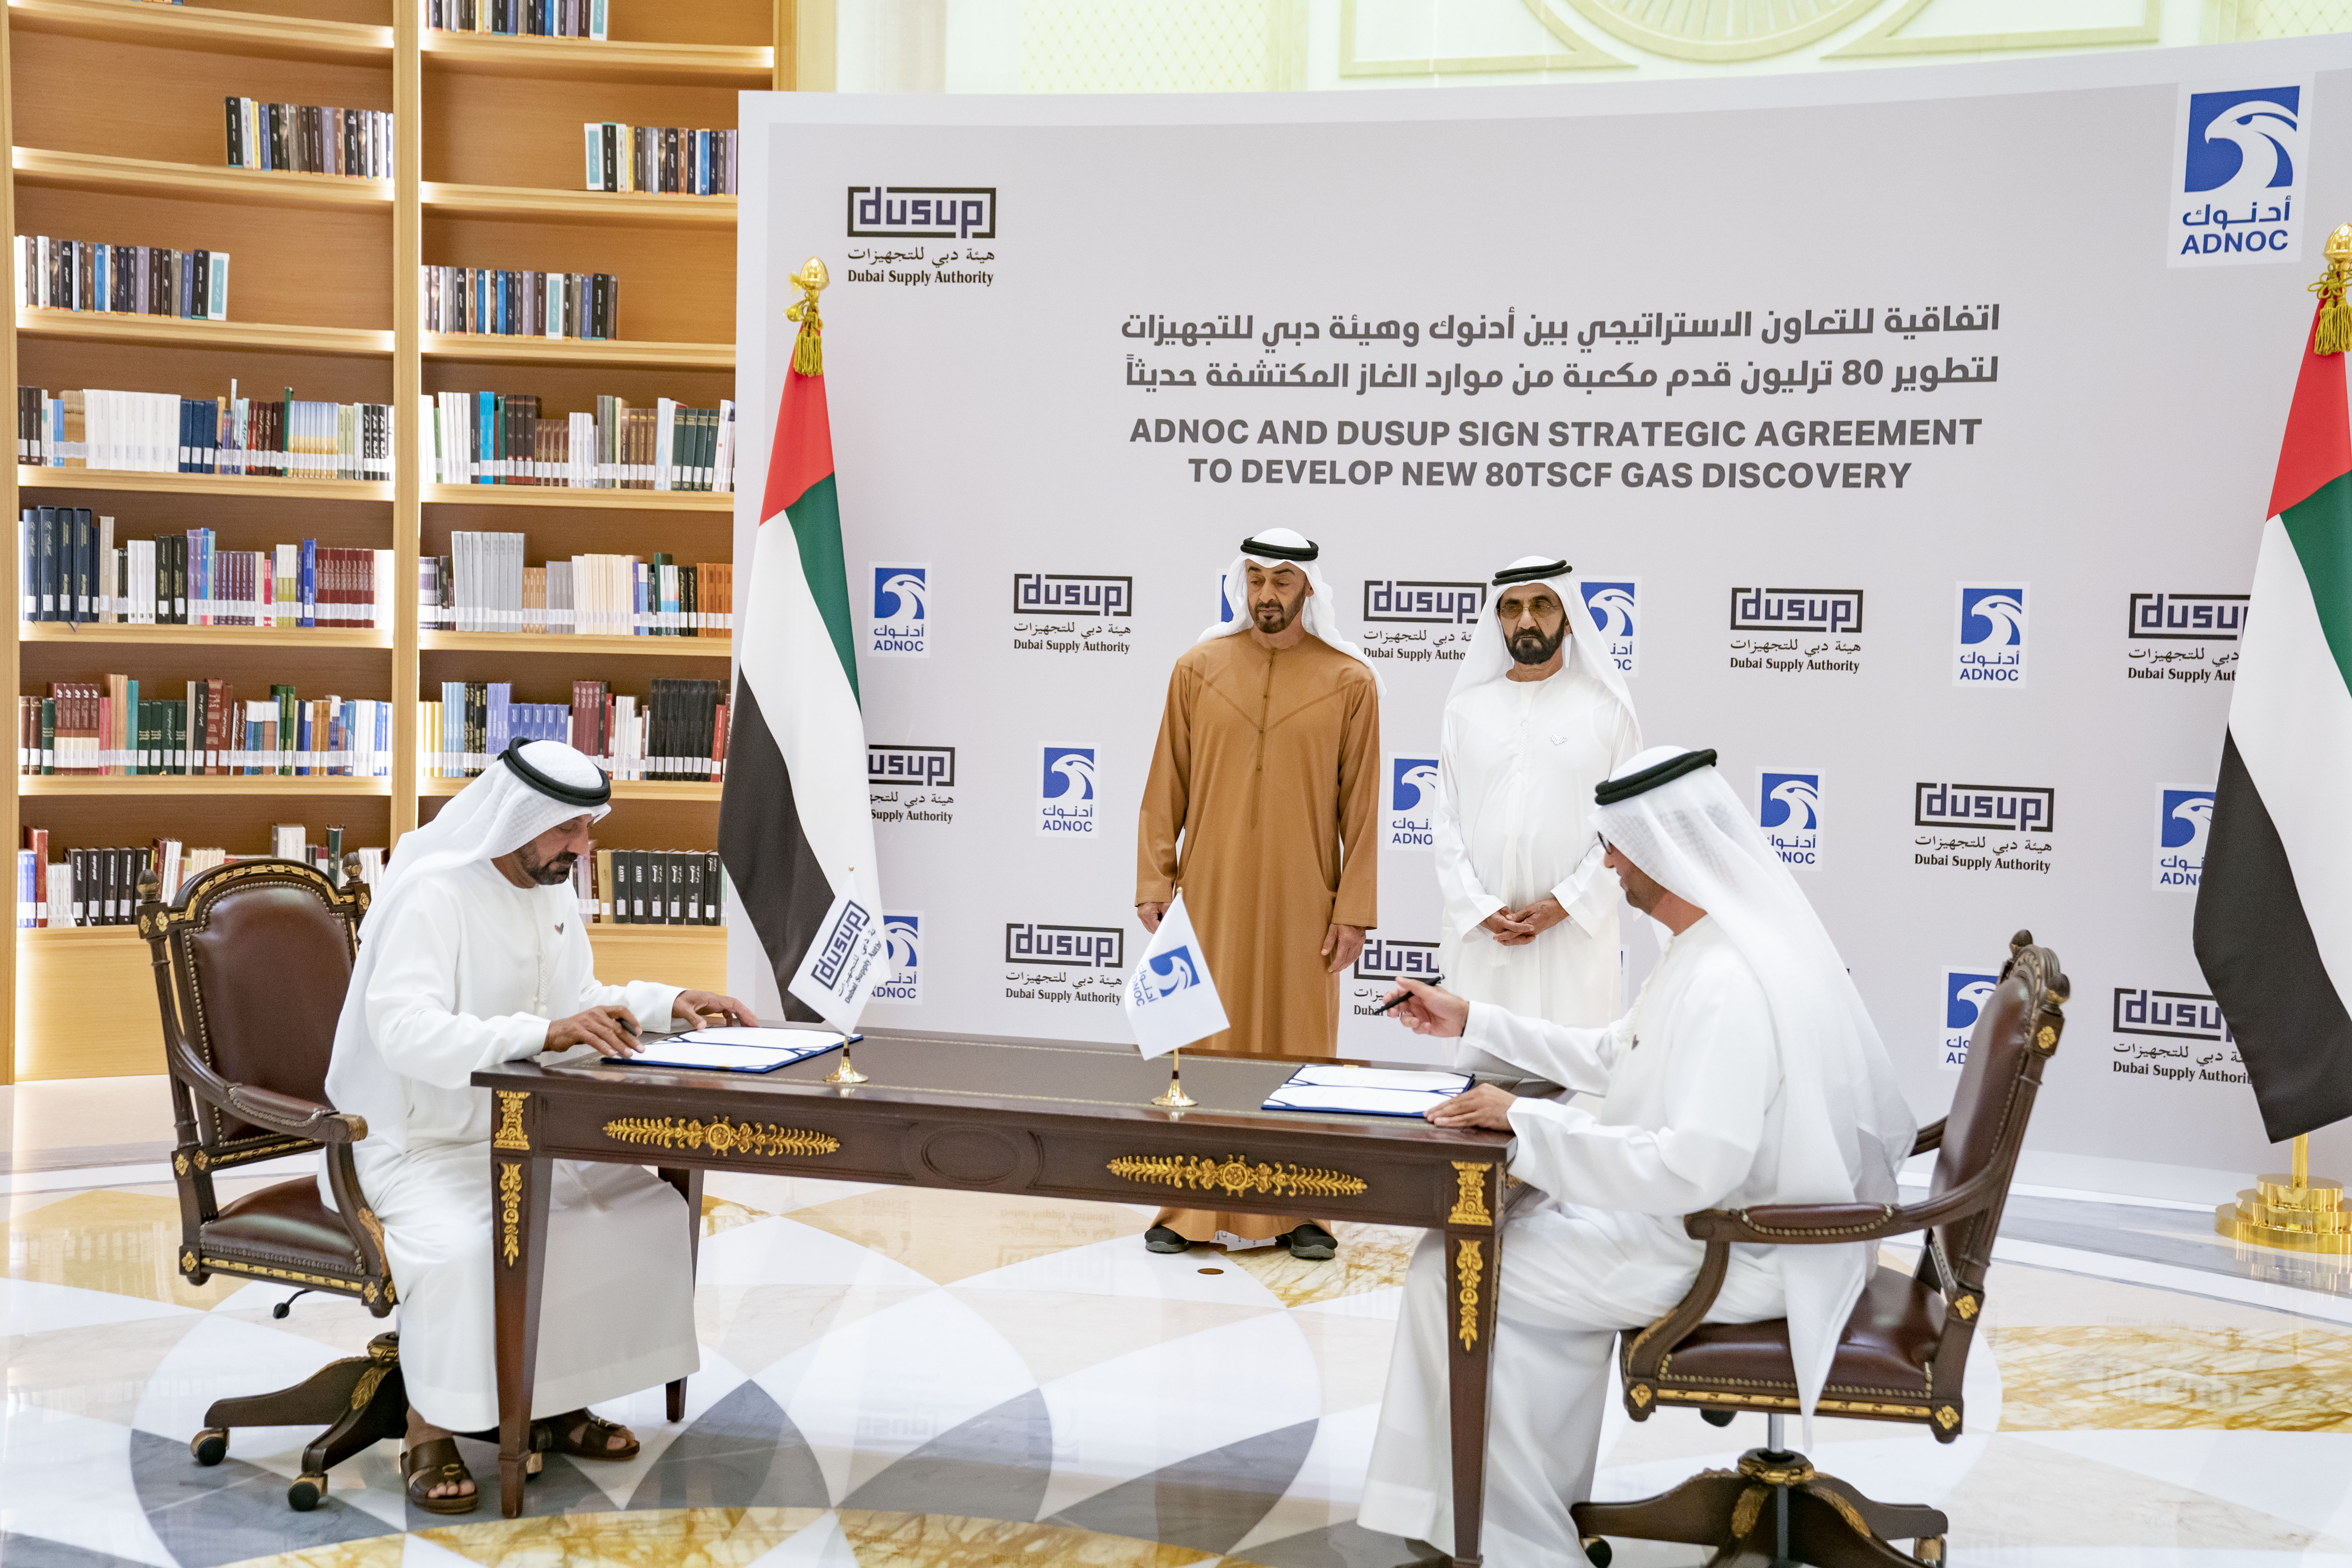 His Highness Sheikh Mohammed bin Rashid Al Maktoum - UAE's discovery of new Jebel Ali natural gas field to boost country's gas self sufficiency